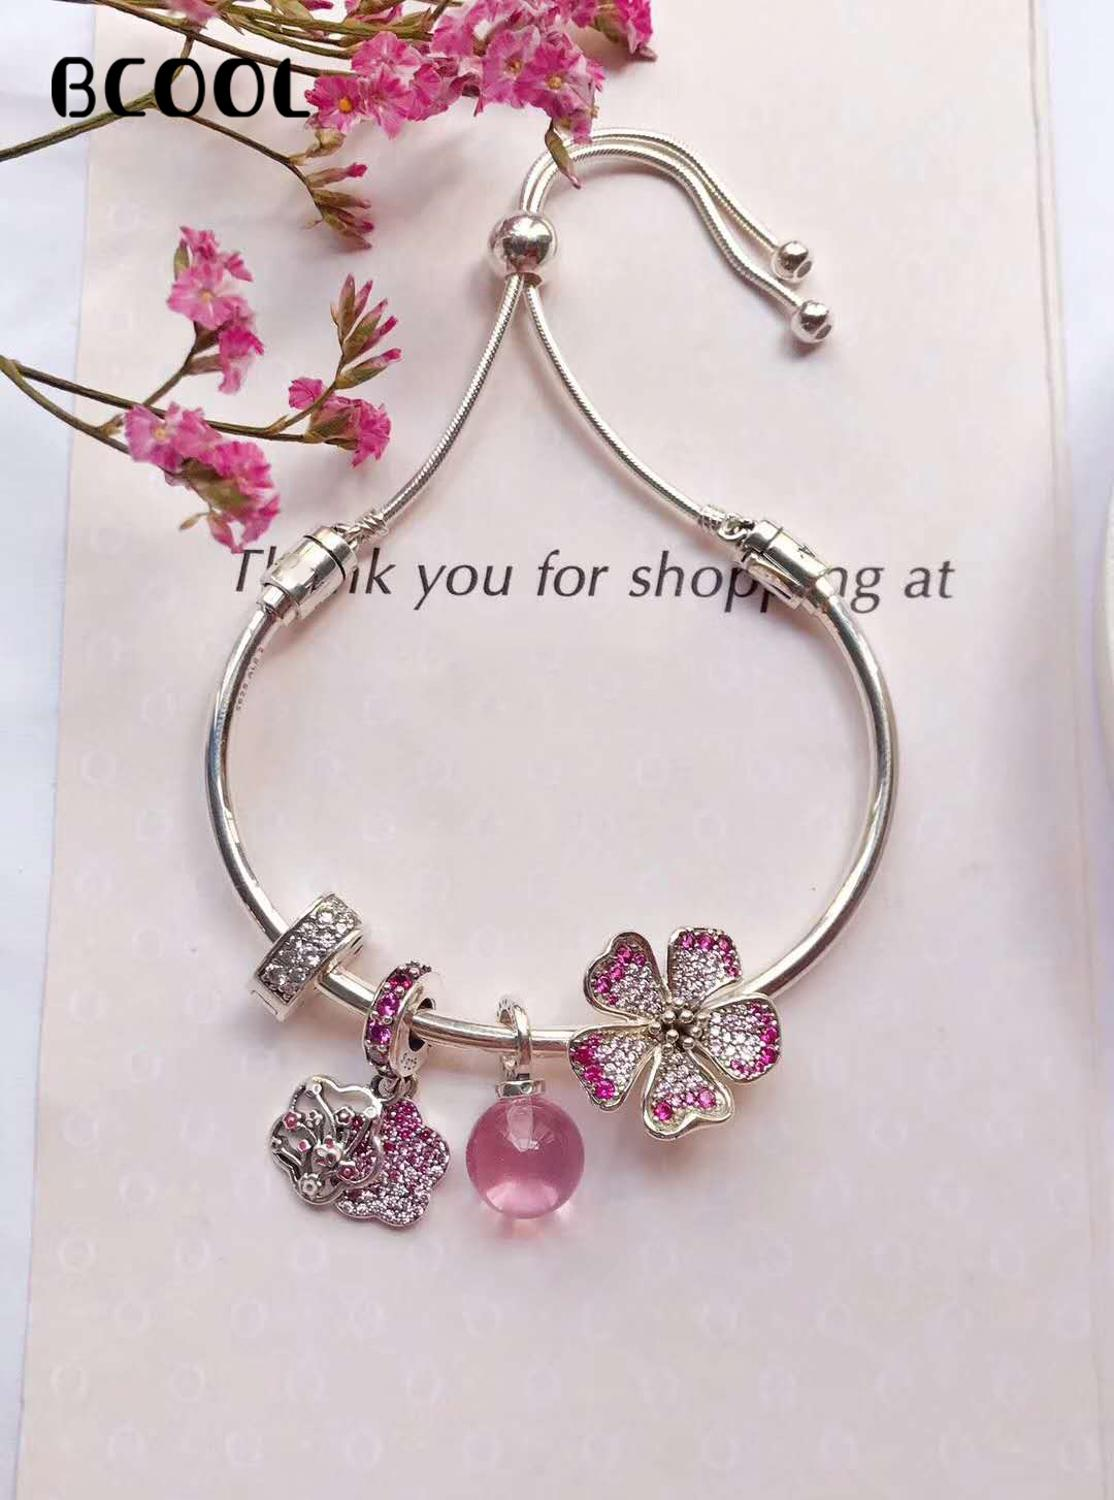 100%925 Sterling Silver Original 1:1, Fashionable Silver Charm Bracelet, Suitable For Women 2019 New Fashion Bracelet Jewelry100%925 Sterling Silver Original 1:1, Fashionable Silver Charm Bracelet, Suitable For Women 2019 New Fashion Bracelet Jewelry